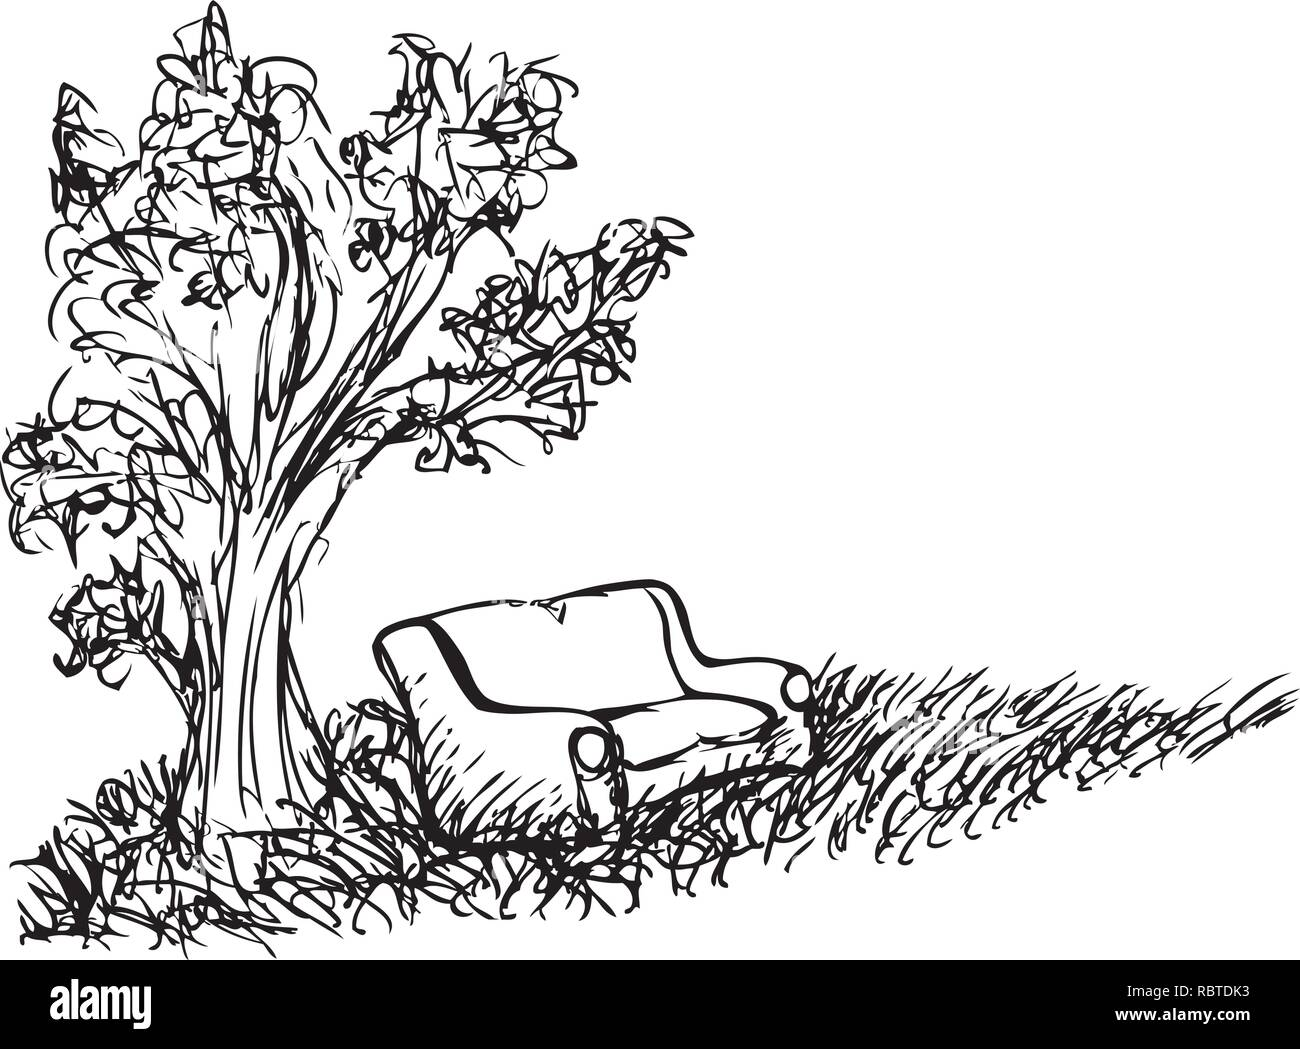 Sketch of a sofa put down on a field by jziprian - Stock Image